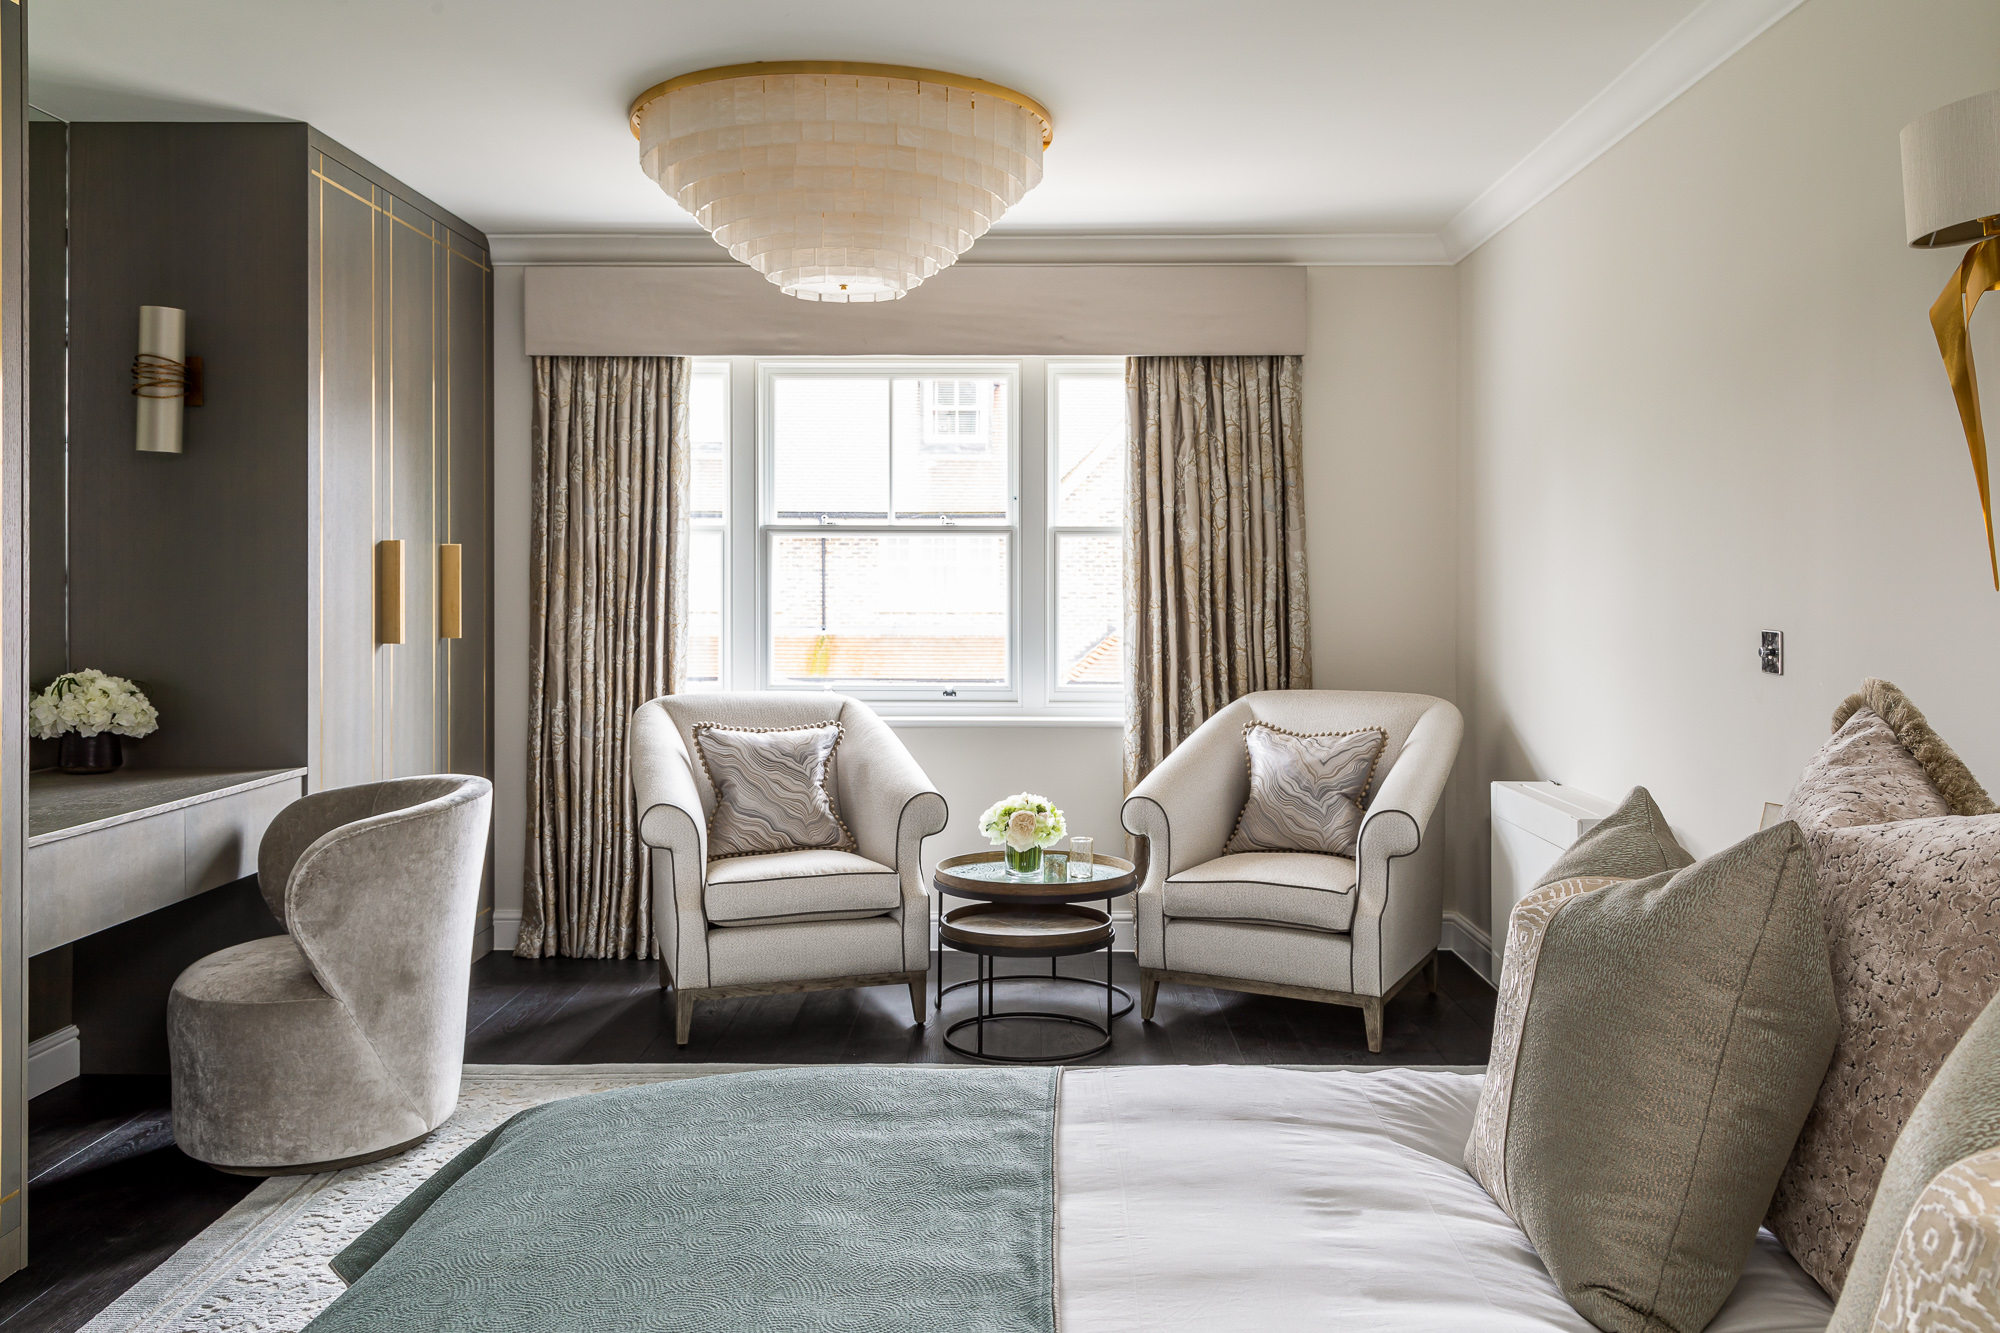 jonathan bond, interior photographer, bedroom chairs and bed, esher, surrey